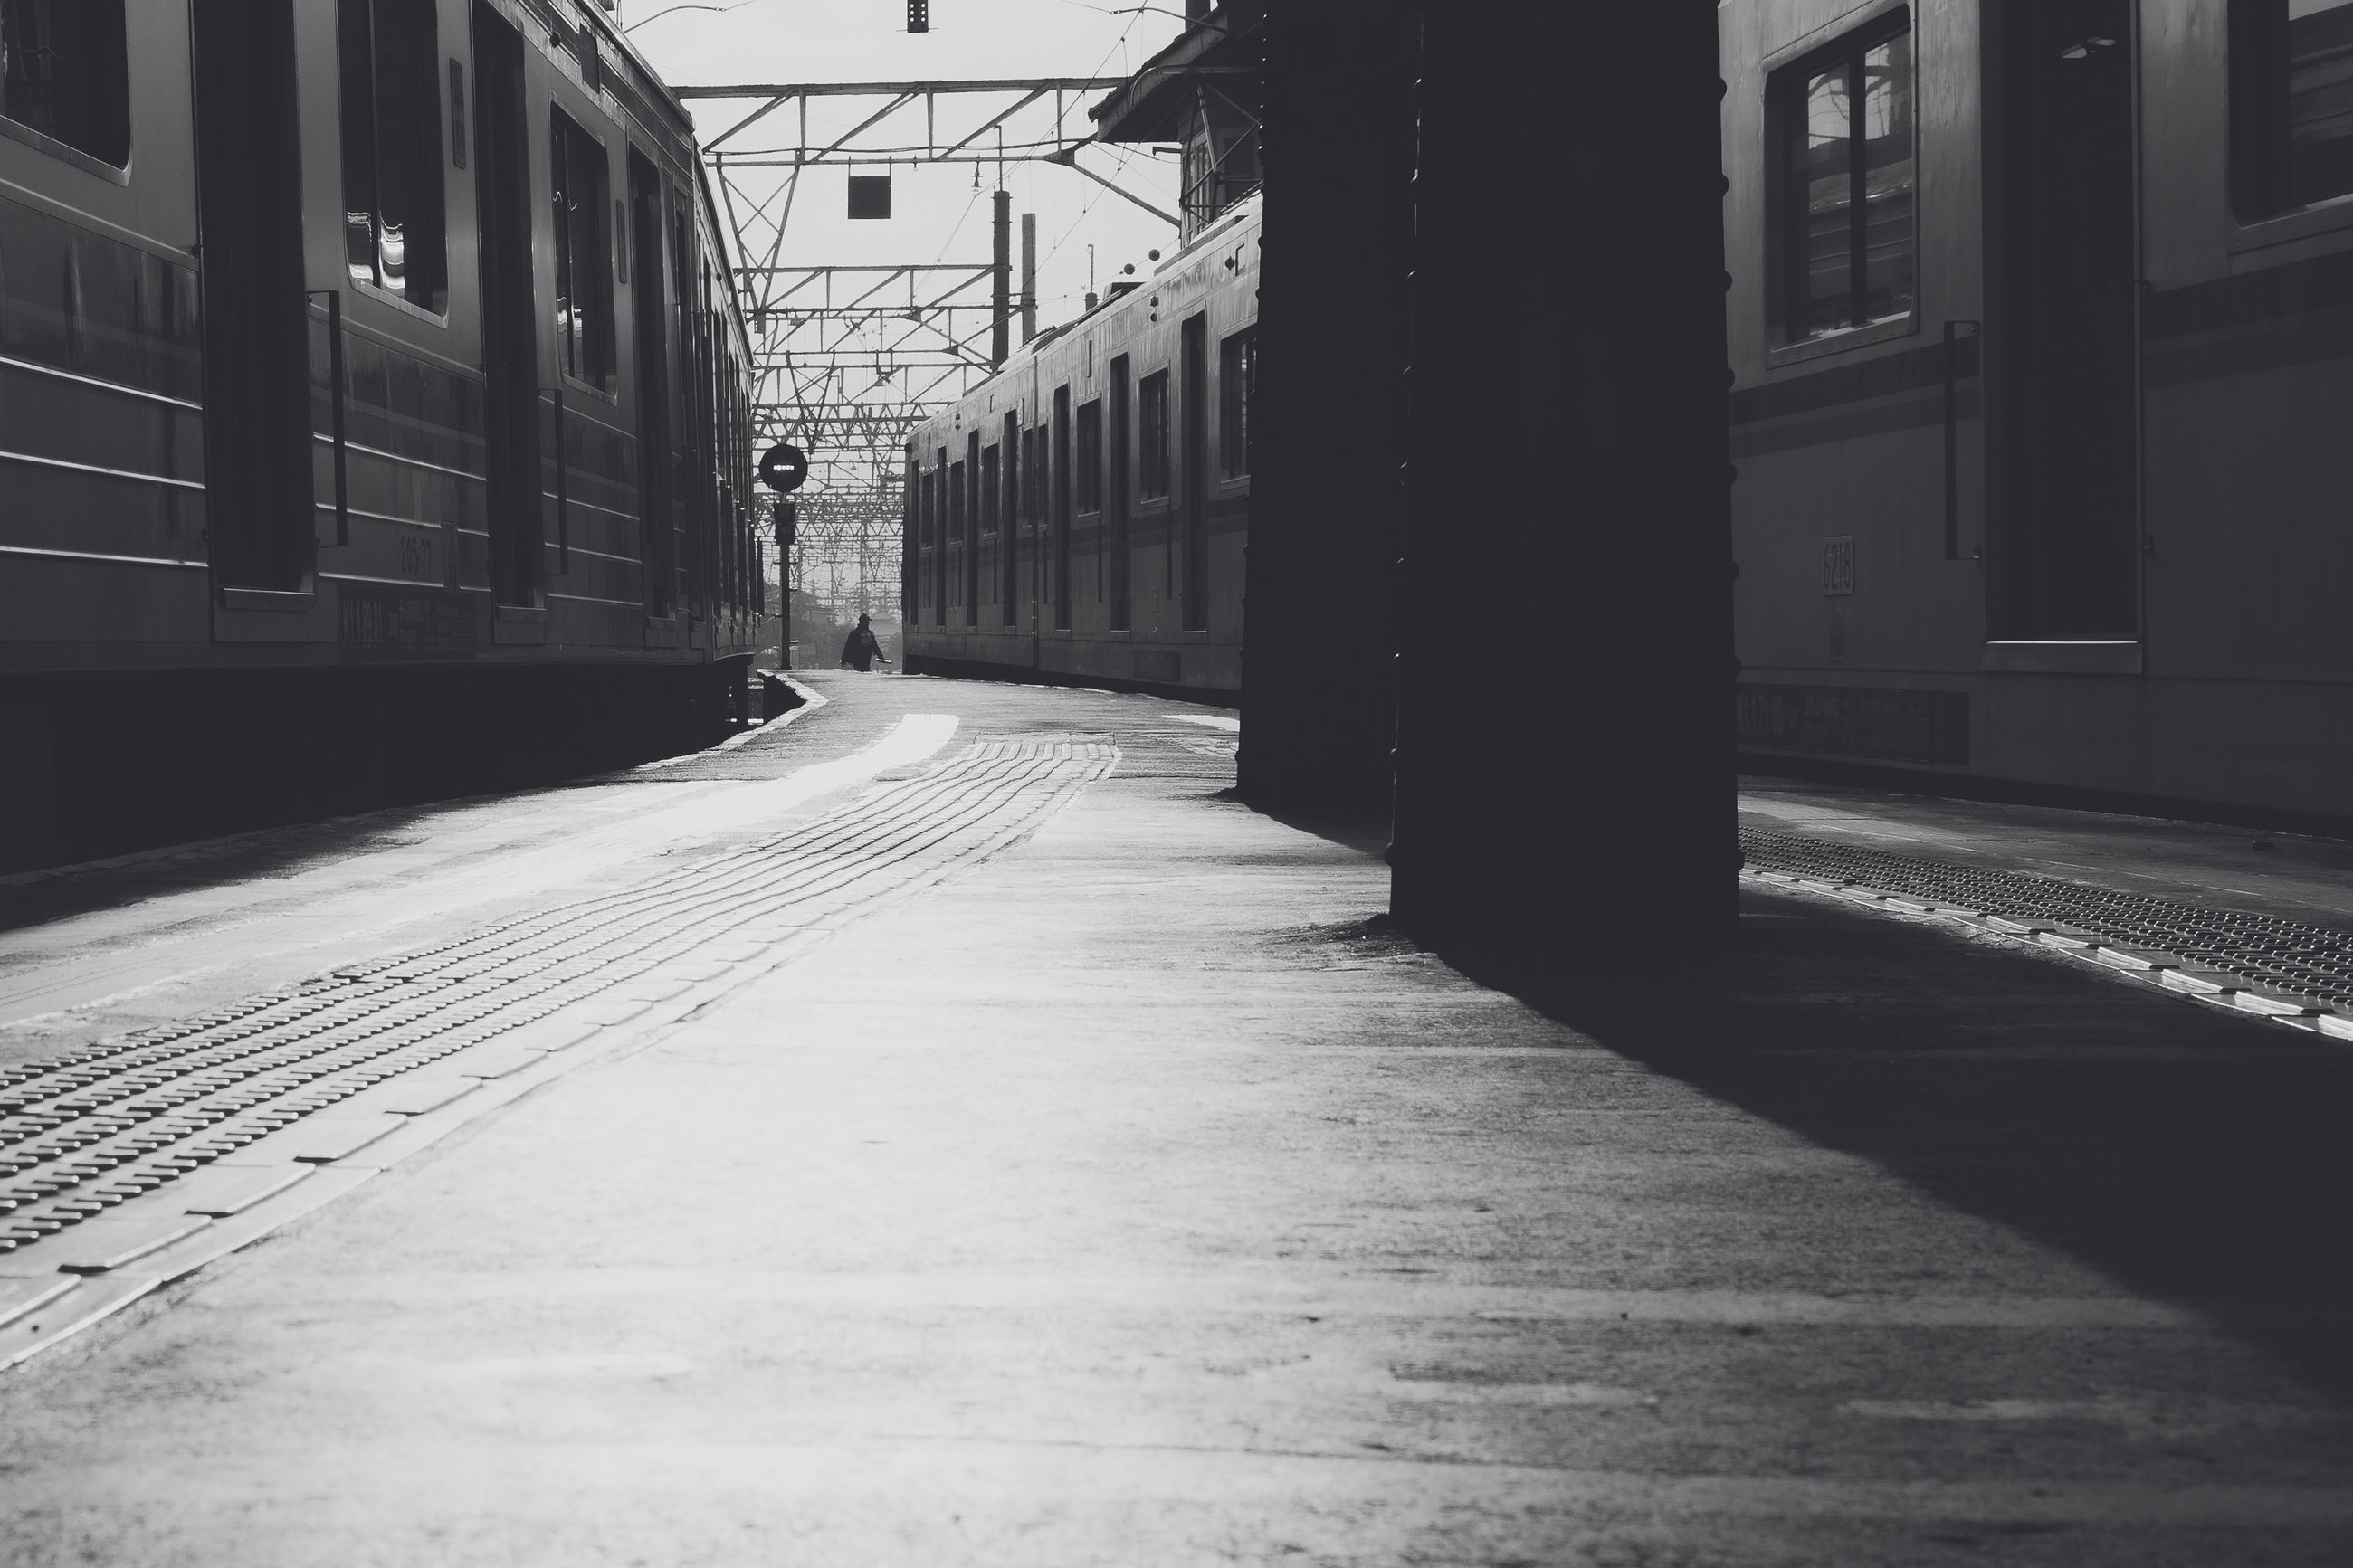 rail transportation, architecture, public transportation, built structure, building exterior, railroad track, track, transportation, train, train - vehicle, railroad station platform, railroad station, mode of transportation, no people, the way forward, direction, city, day, outdoors, street, station